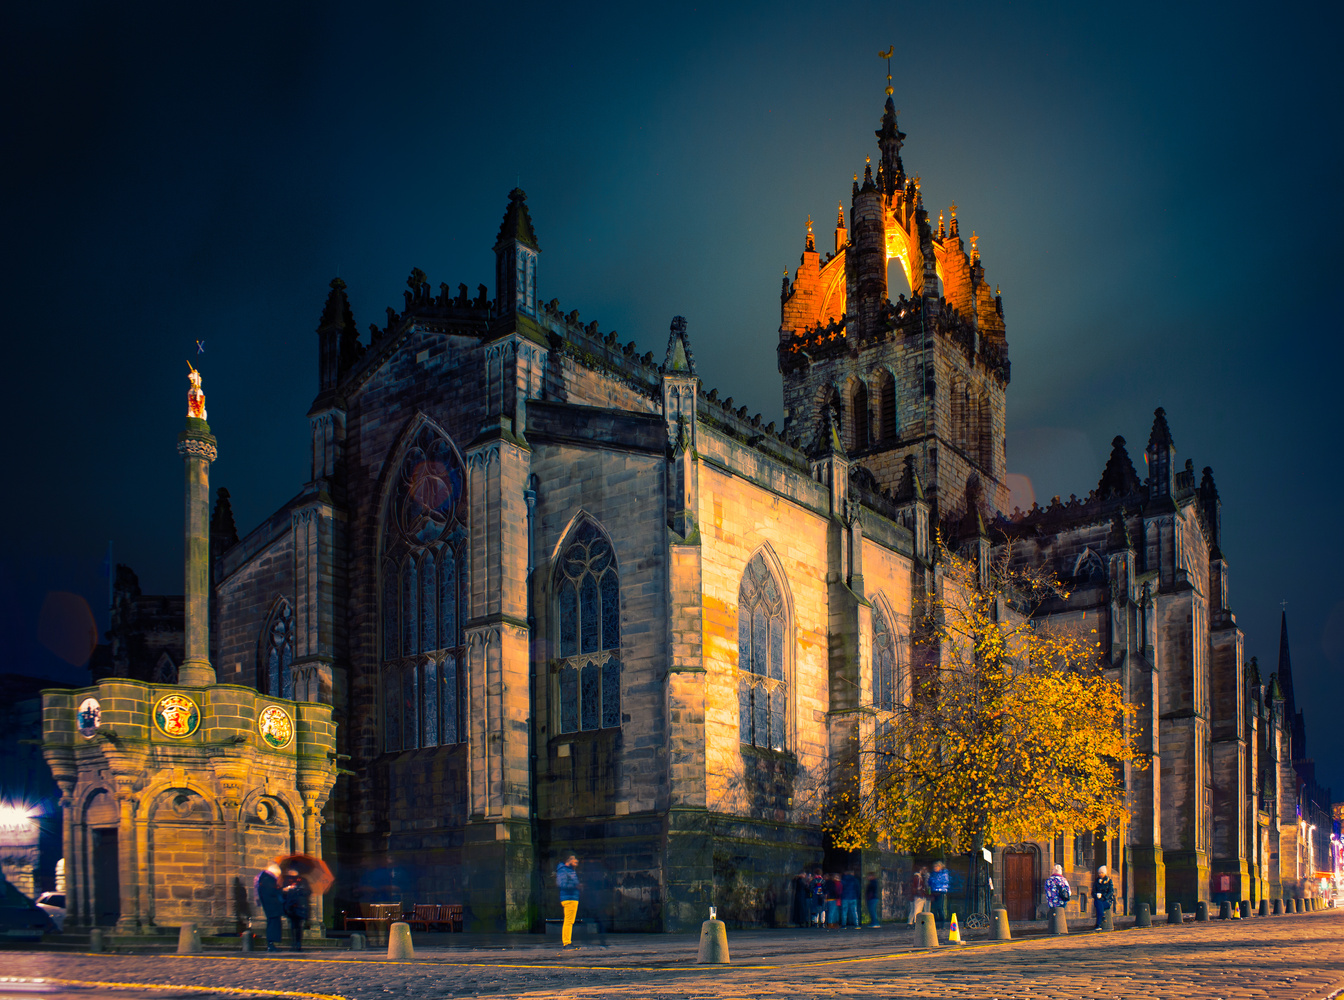 St. Giles' Cathedral at Night by Nic Cameron